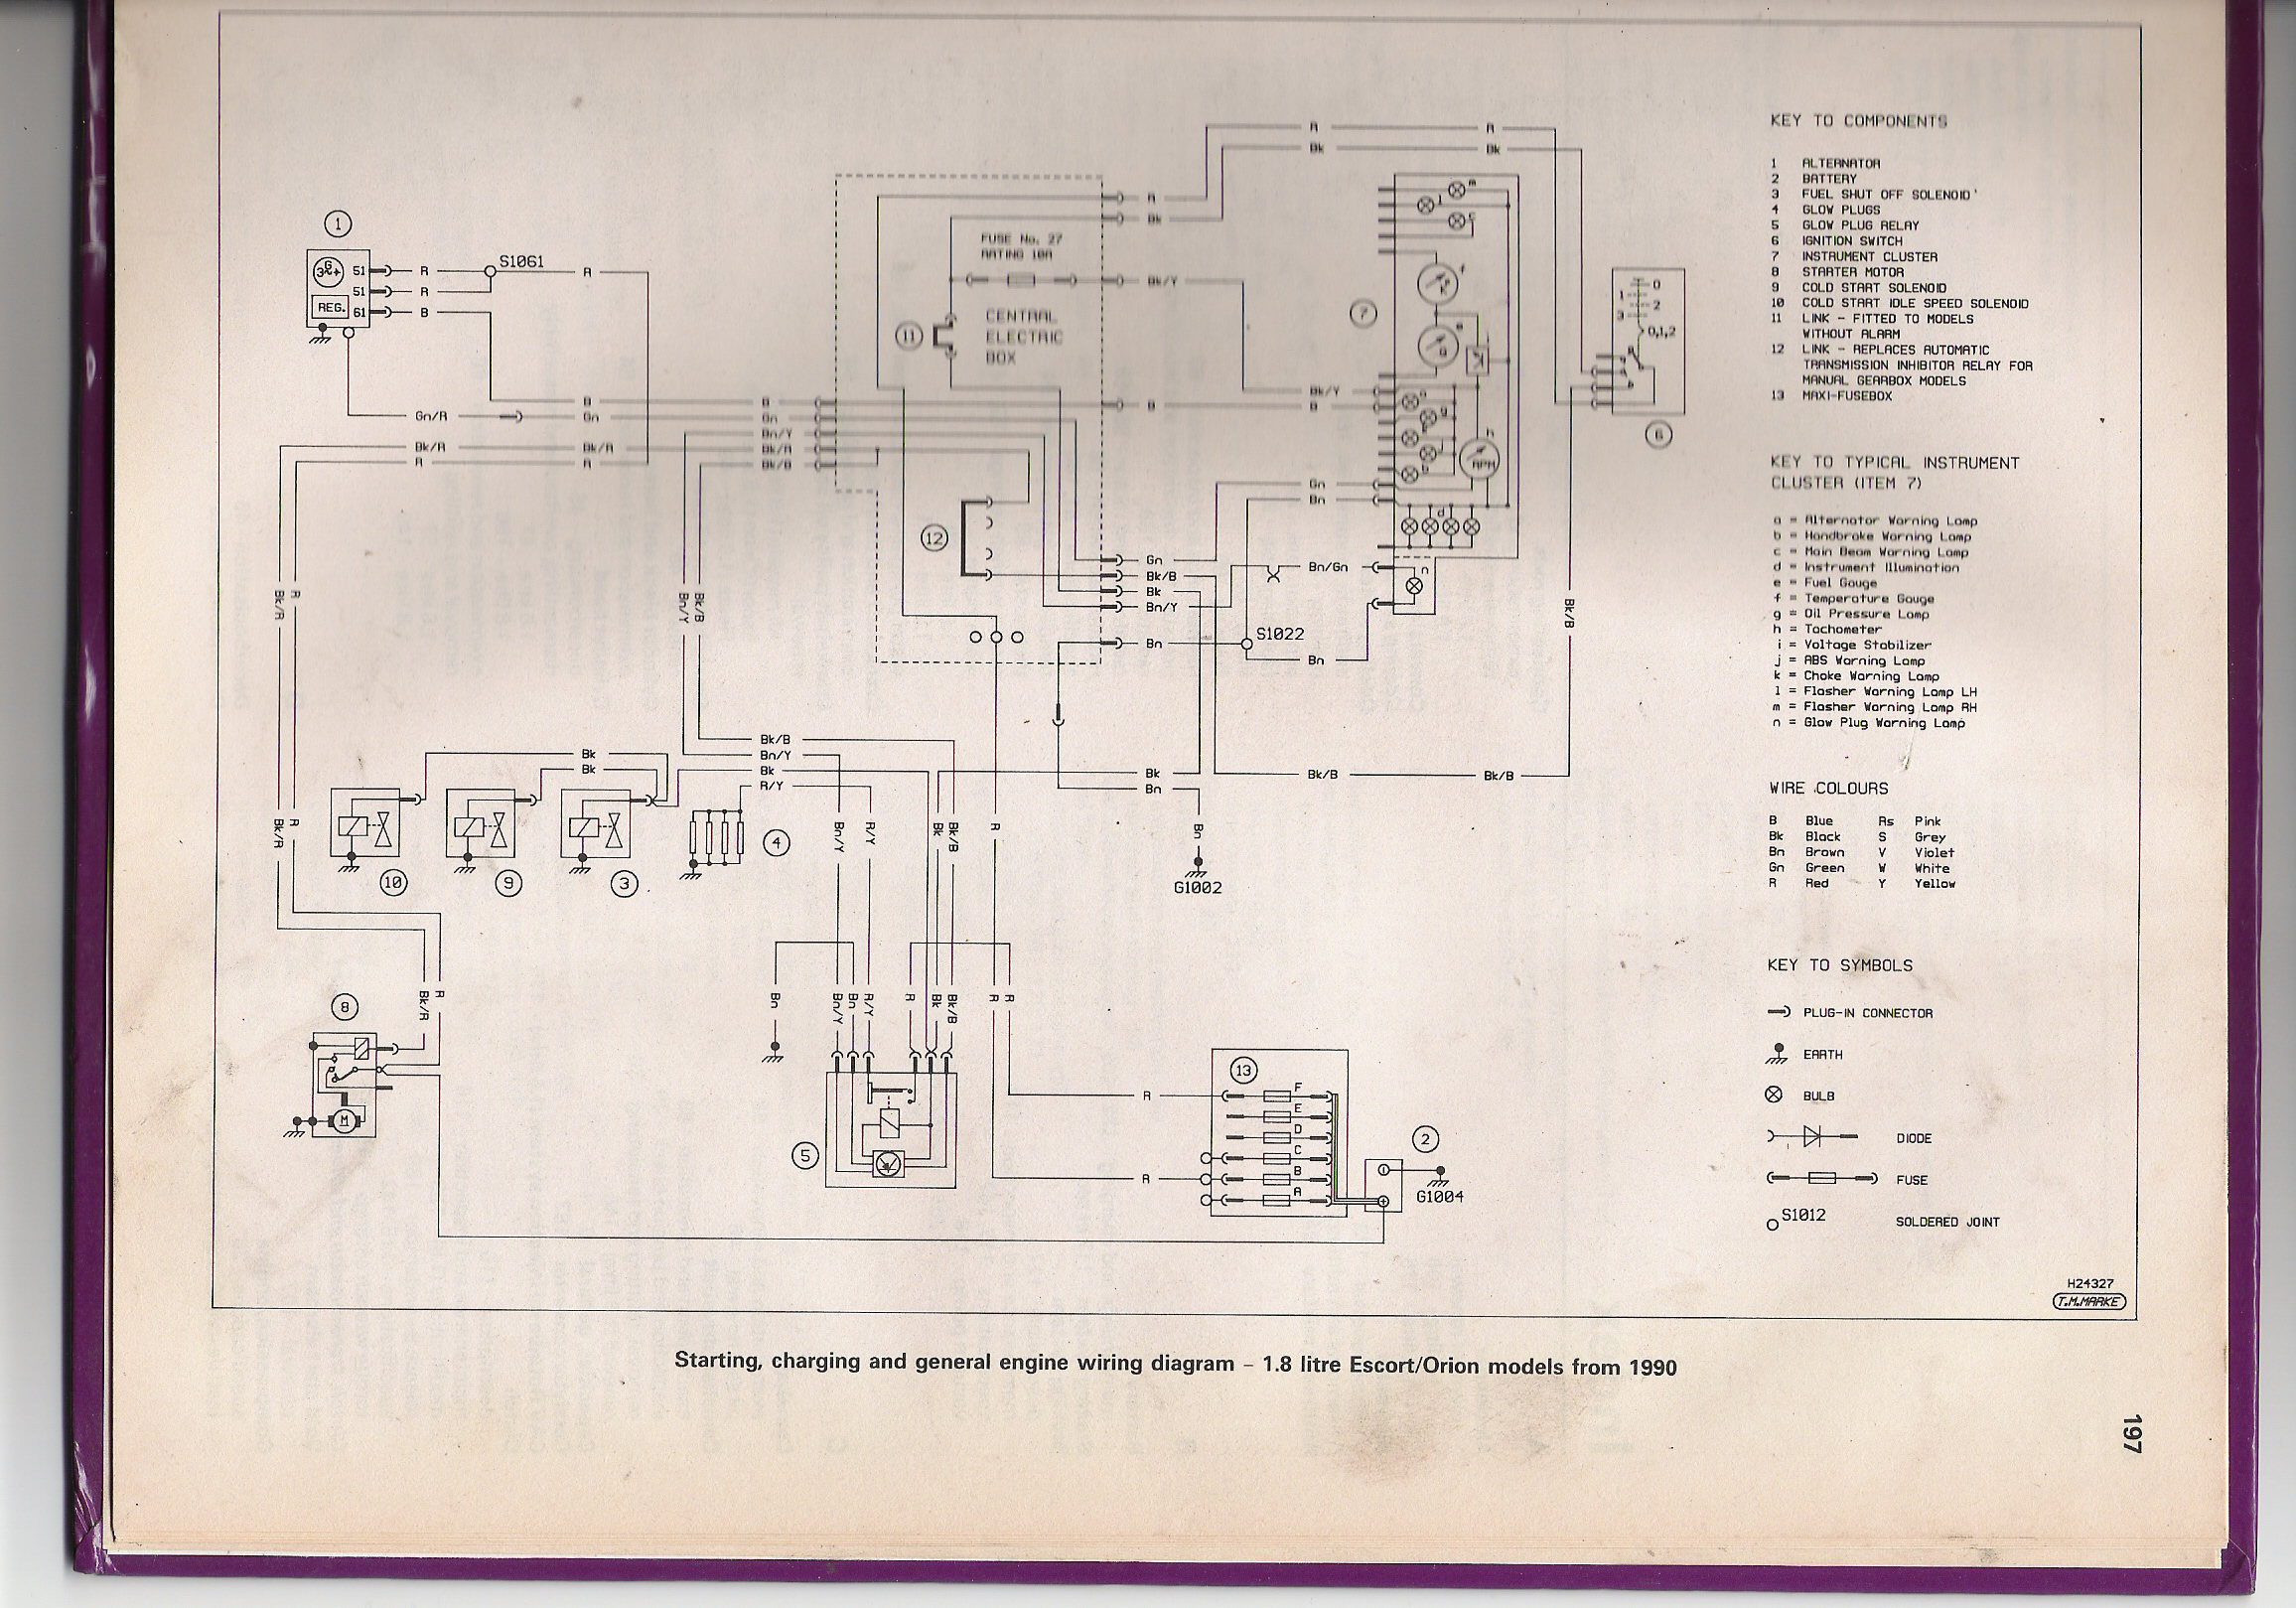 fordwiringdl mk4 wiring diagram wiring diagram for mk4 jetta power seats escort mk1 wiring diagram at aneh.co